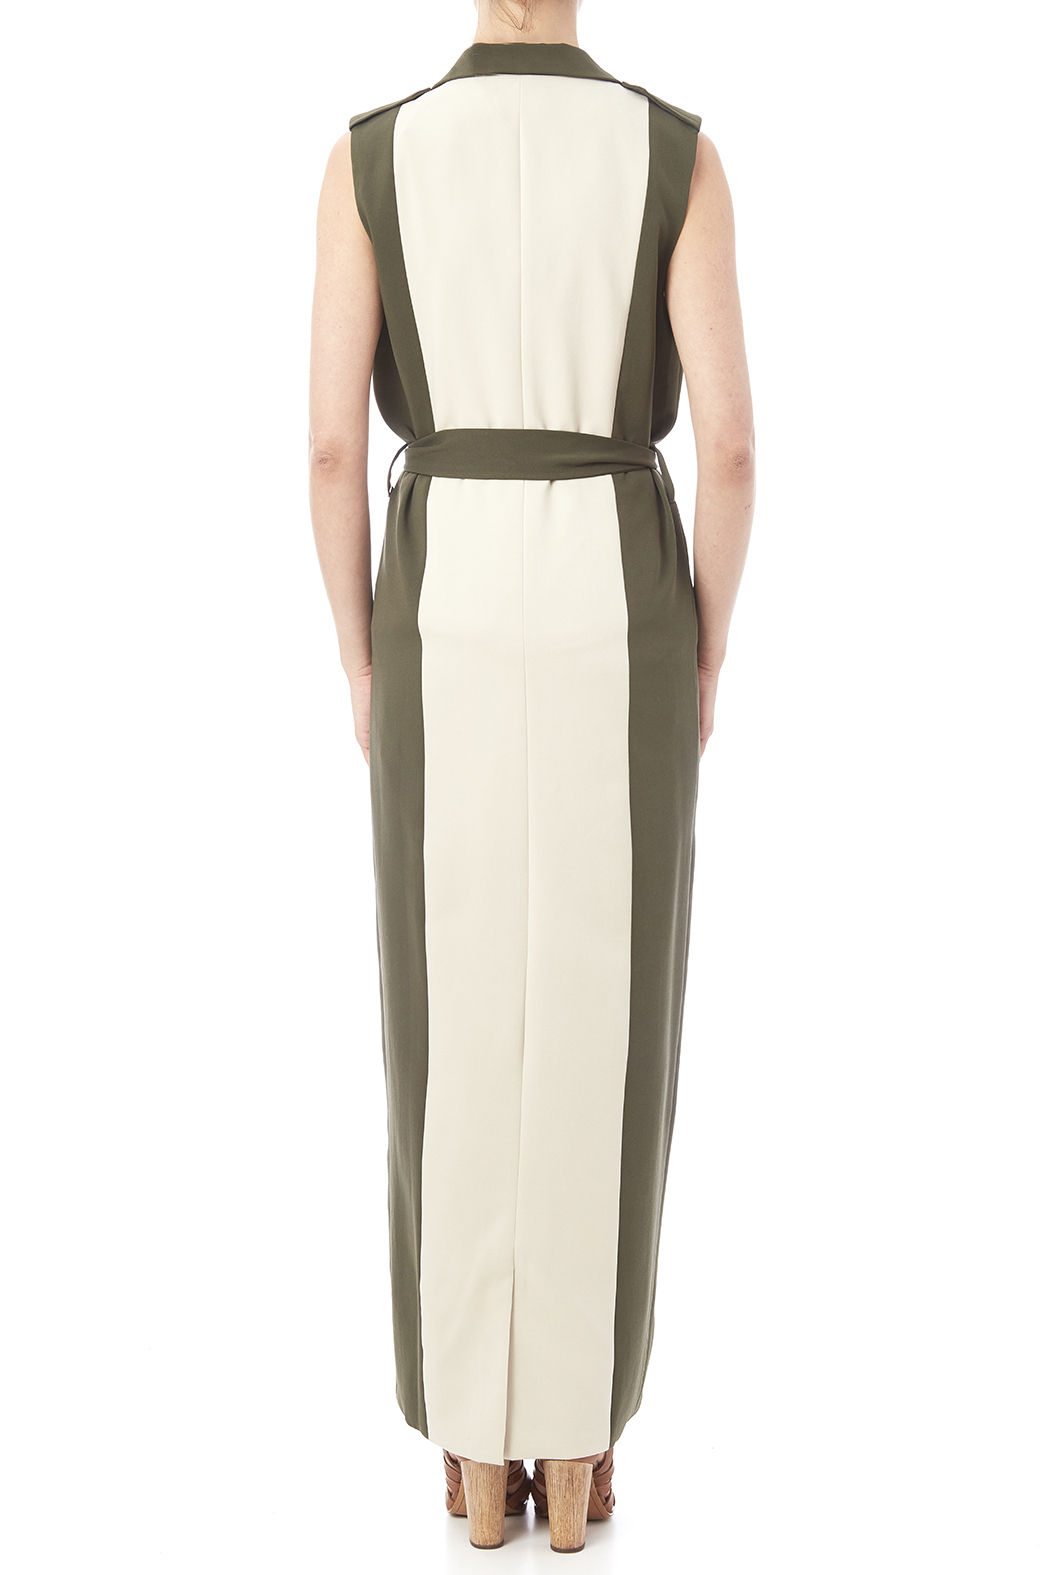 LAVISH ALICE Two Tone Trench - Back Cropped Image